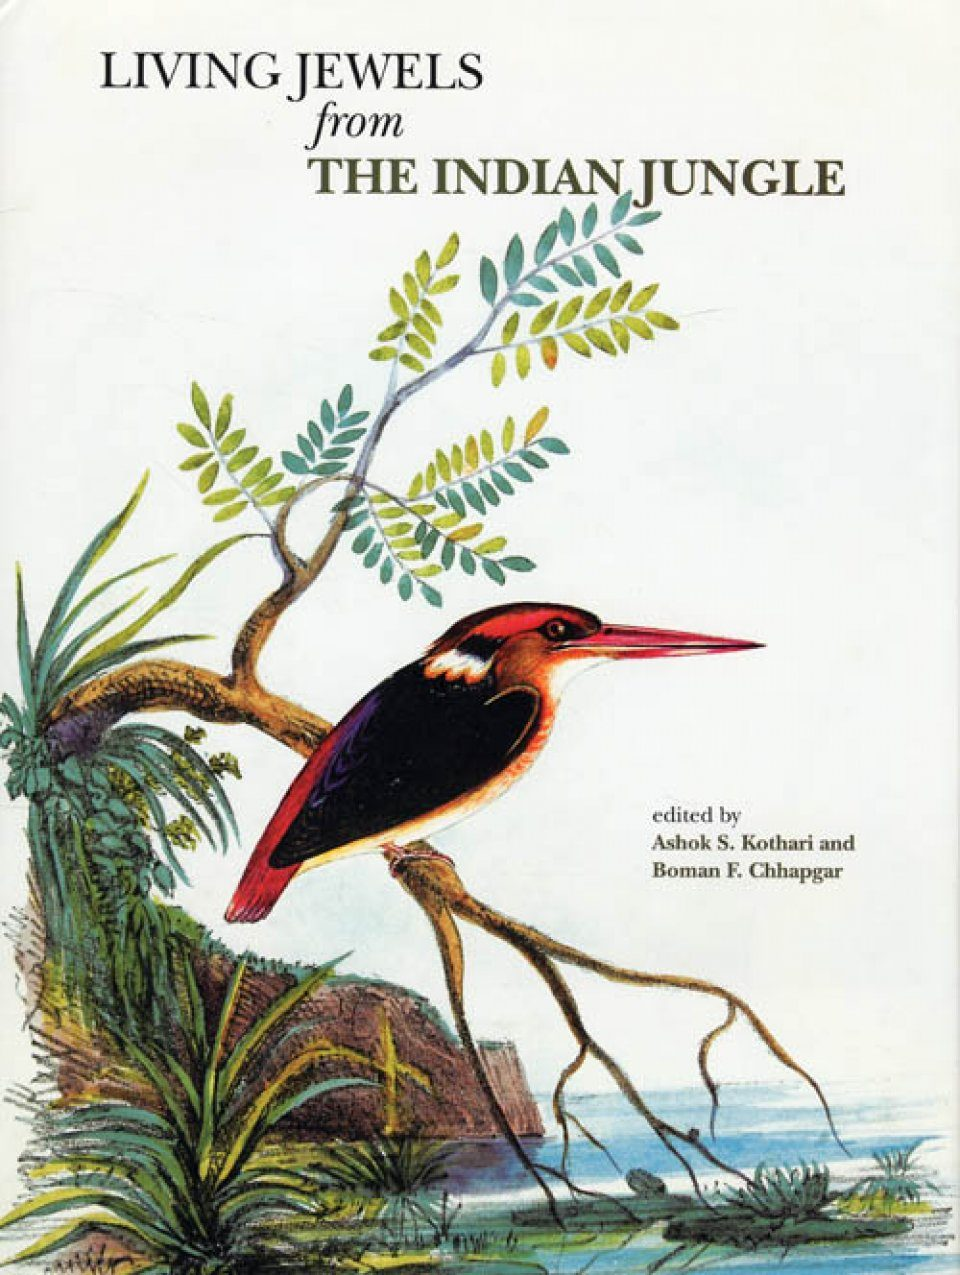 Living Jewels from the Indian Jungle